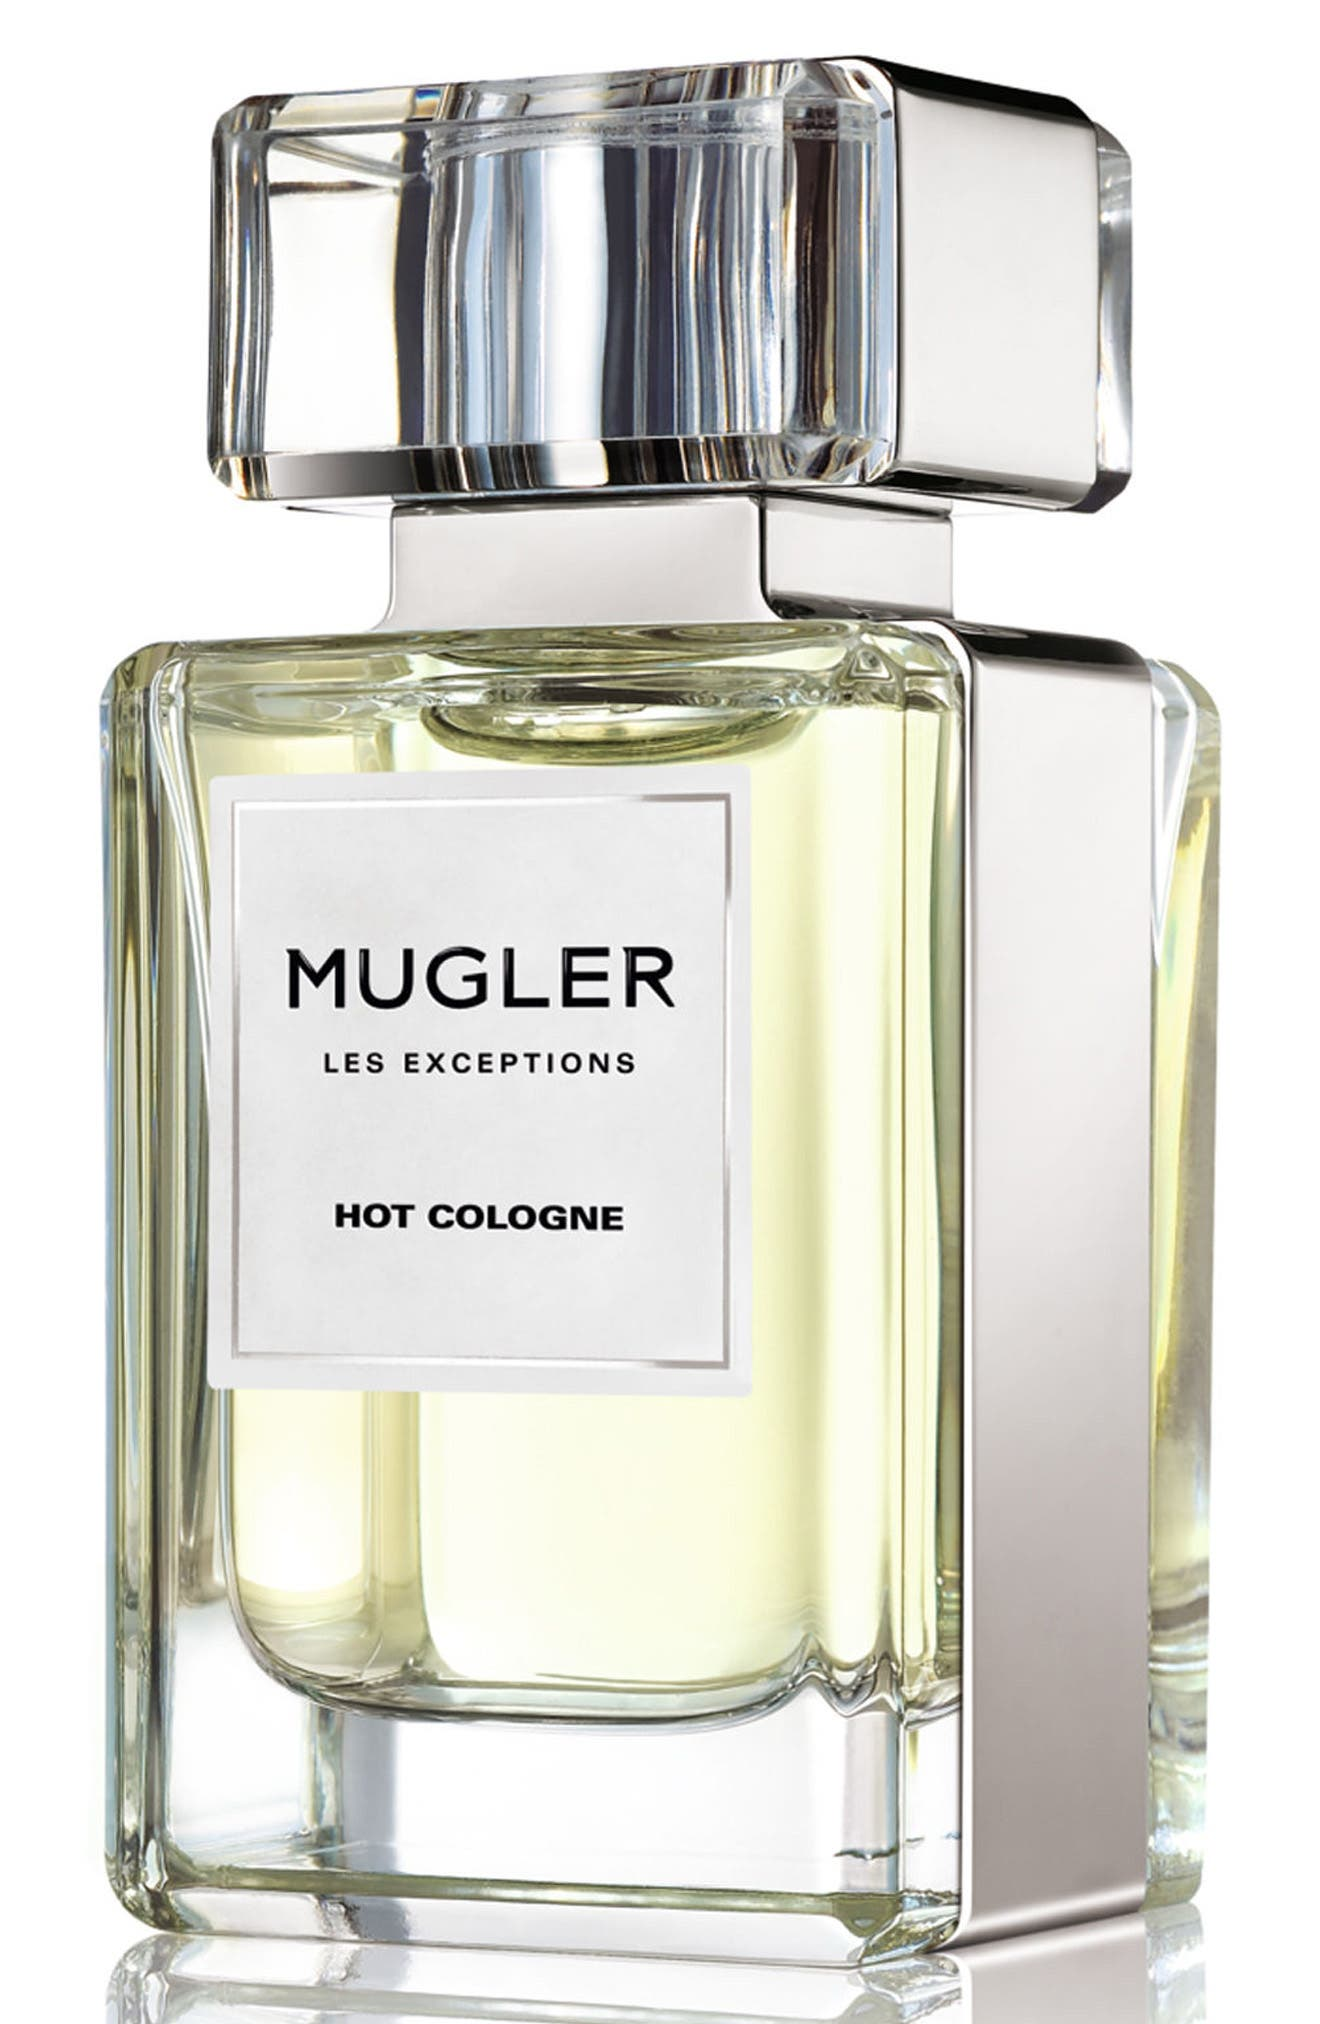 Main Image - Les Exceptions by Mugler Hot Cologne Eau de Parfum Refillable Spray